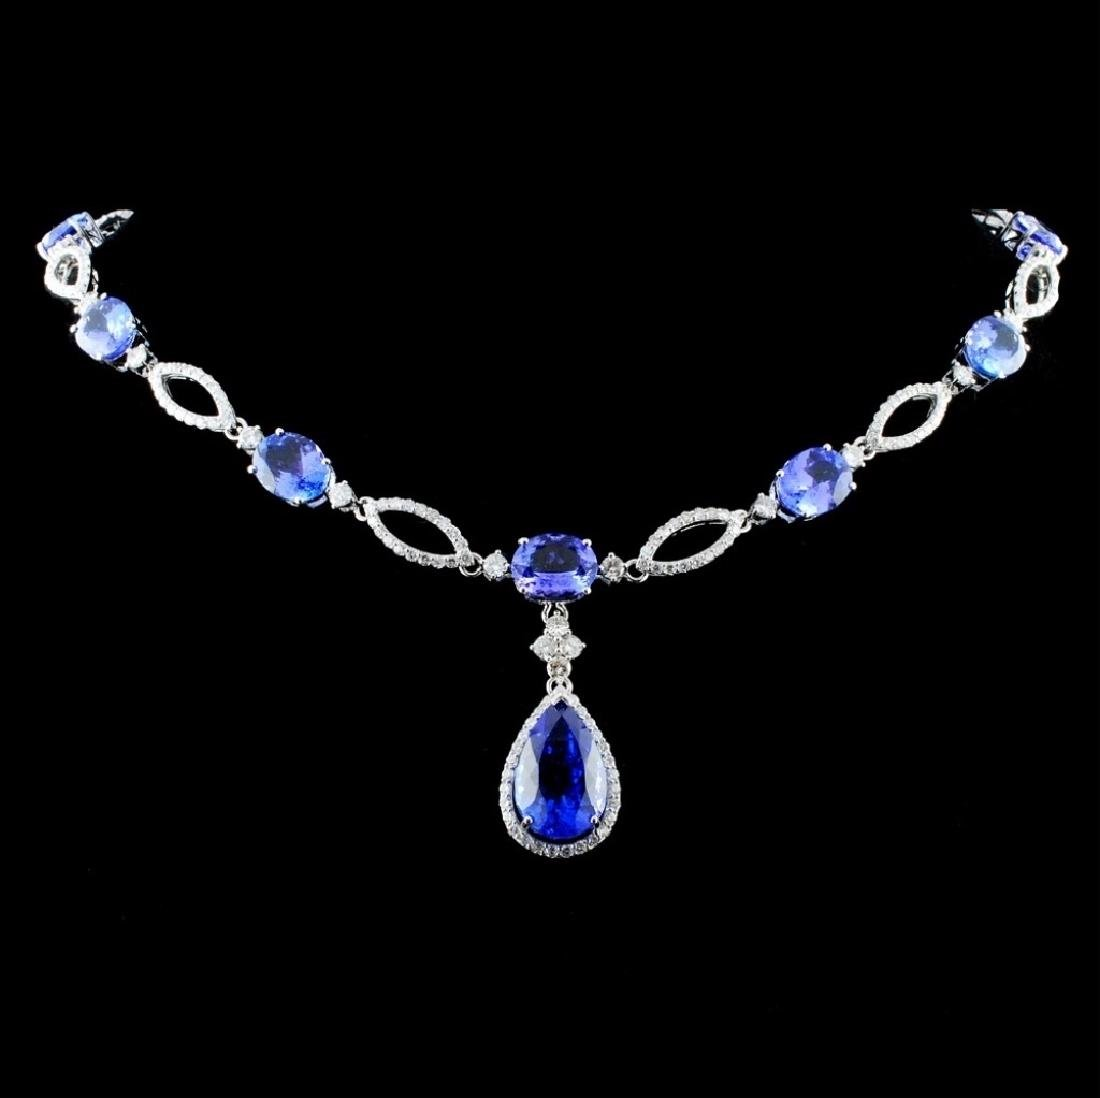 14K Gold 27.20ctw Tanzanite & 3.98ct Diamond Neckl